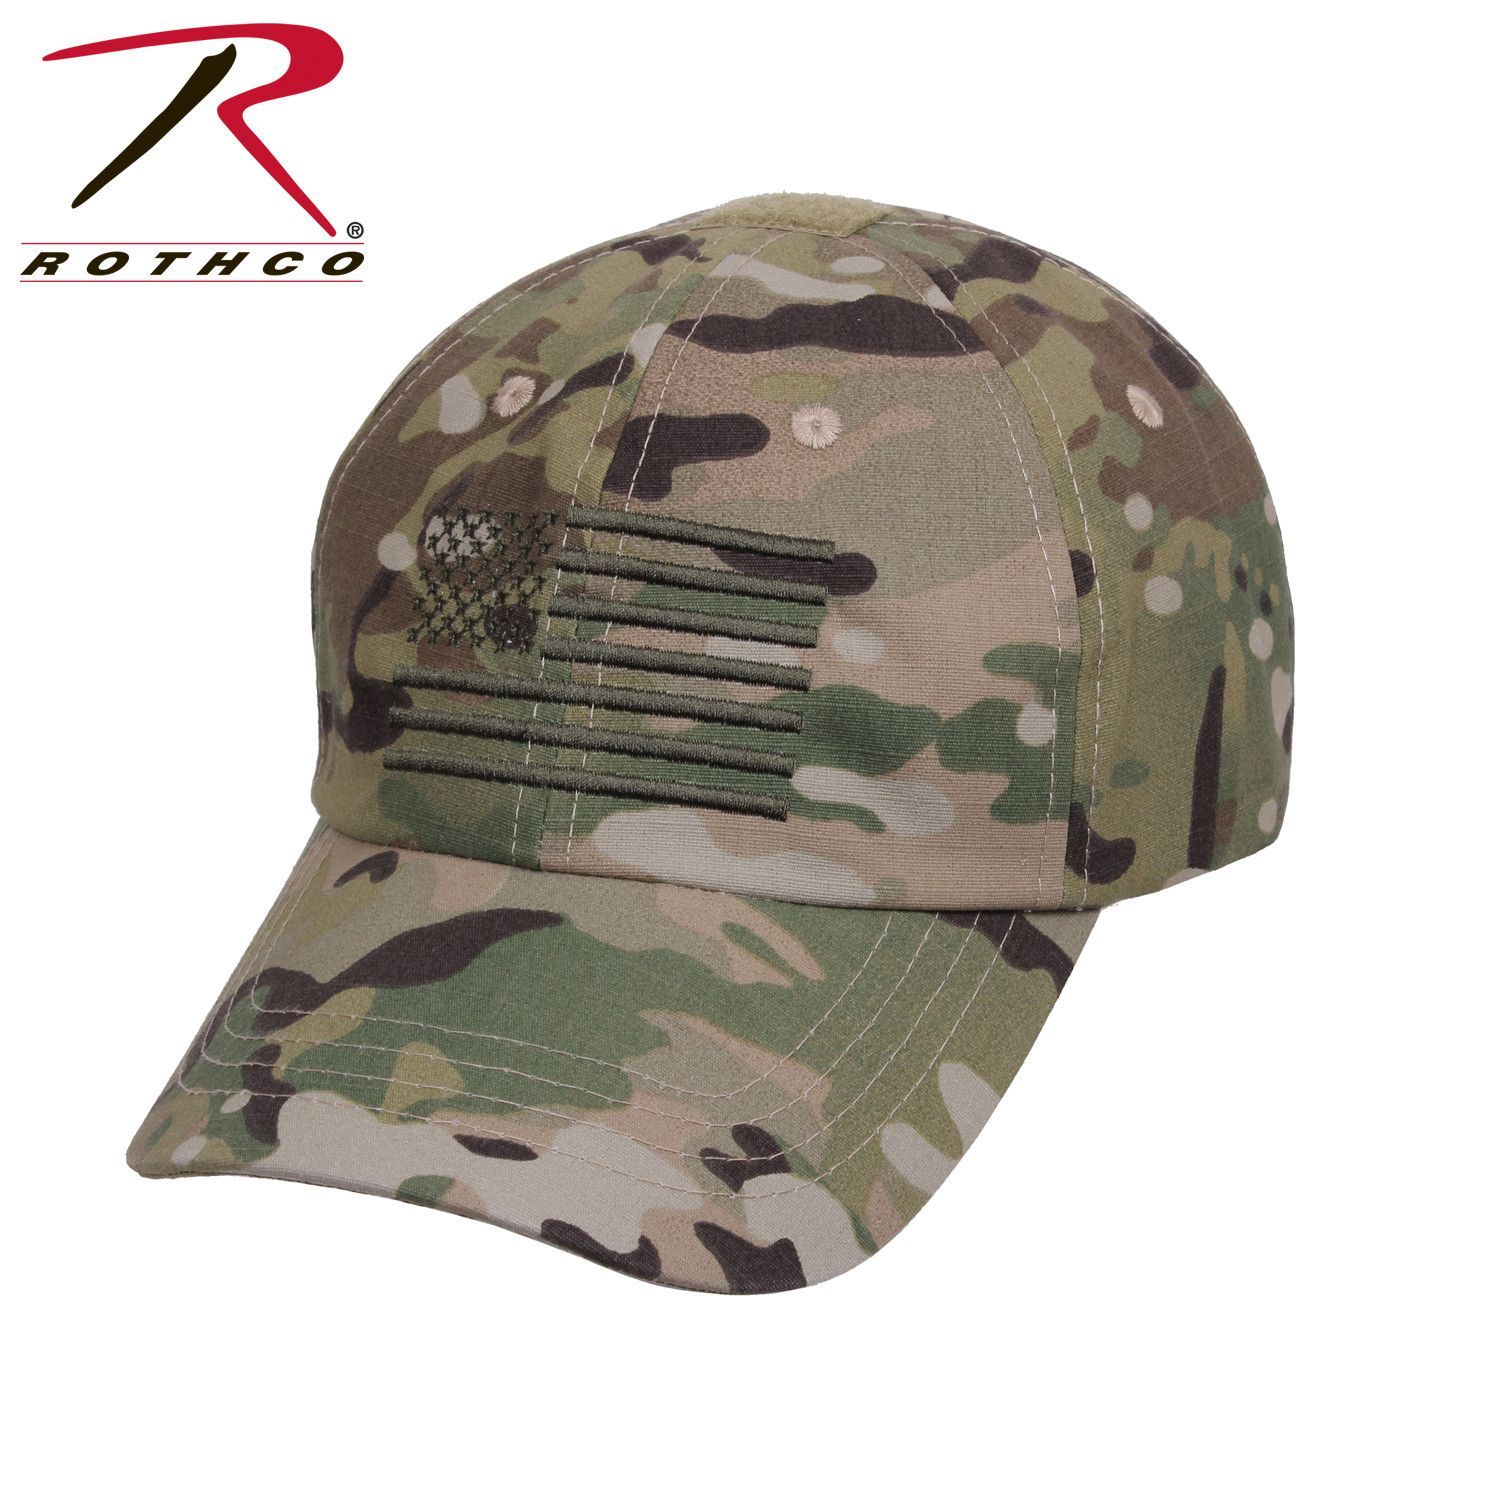 The tactical cap features an embroidered U.S Flag and features 4 reinforced  air vent holes 95f0fe183a6